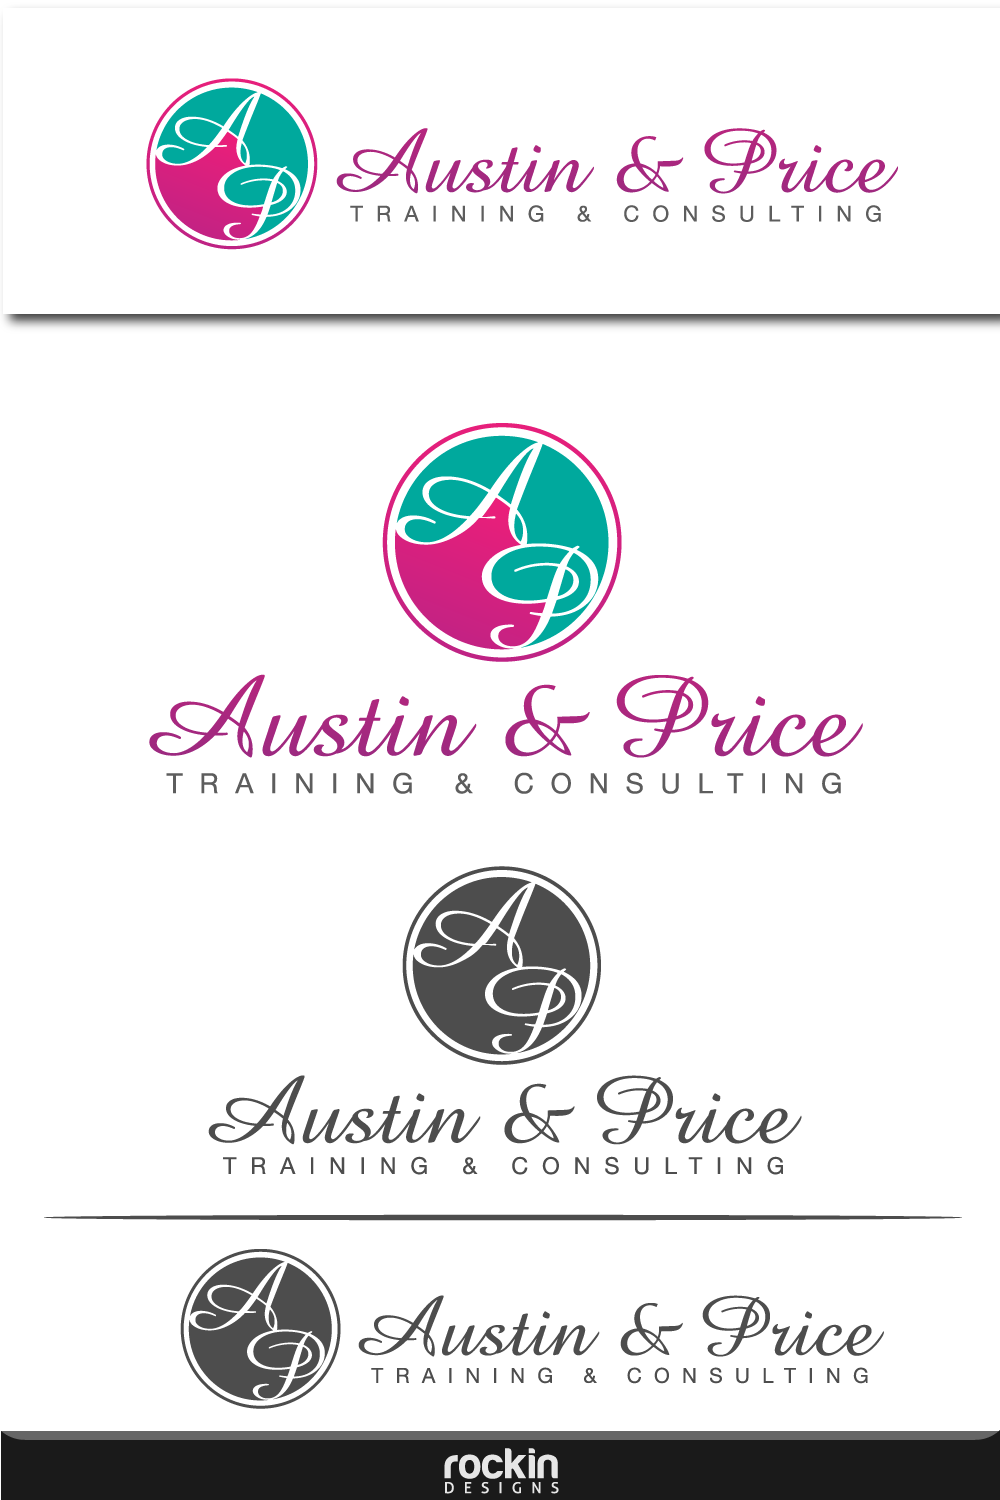 Logo Design by rockin - Entry No. 46 in the Logo Design Contest Artistic Logo Design for Austin Price Advisory.